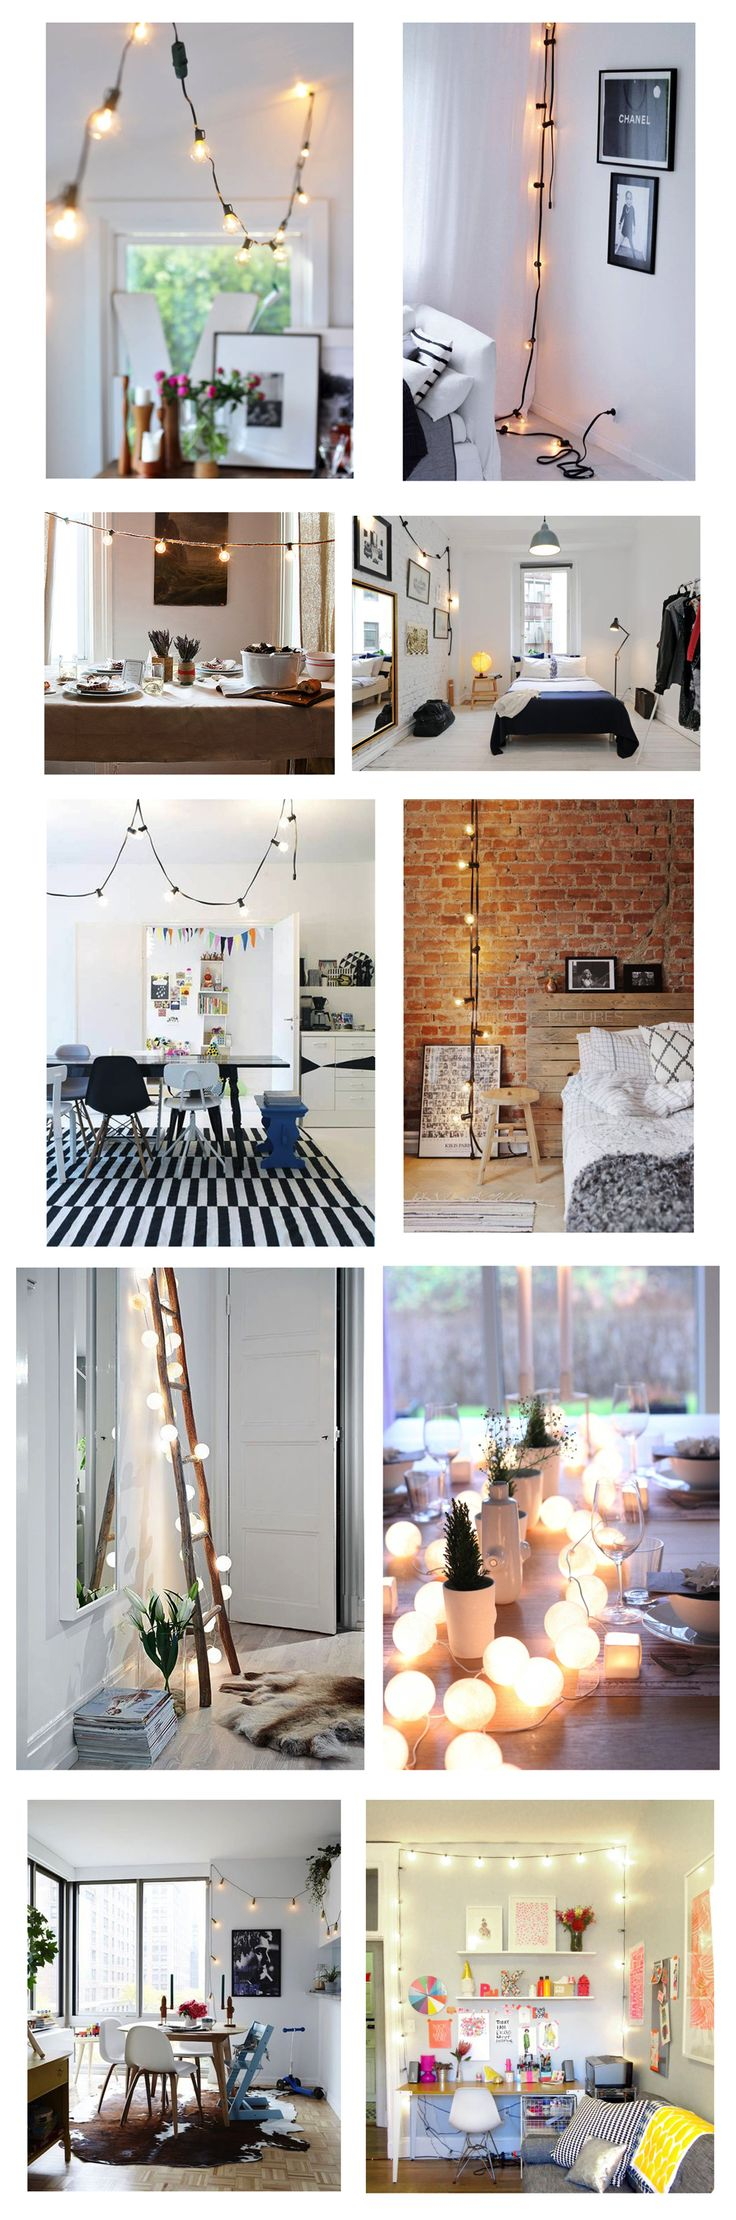 Uncategorized How To Decorate Light Bulbs 25 unique bulb ideas on pinterest photography light bulbs decorating with hanging globe lights indoors